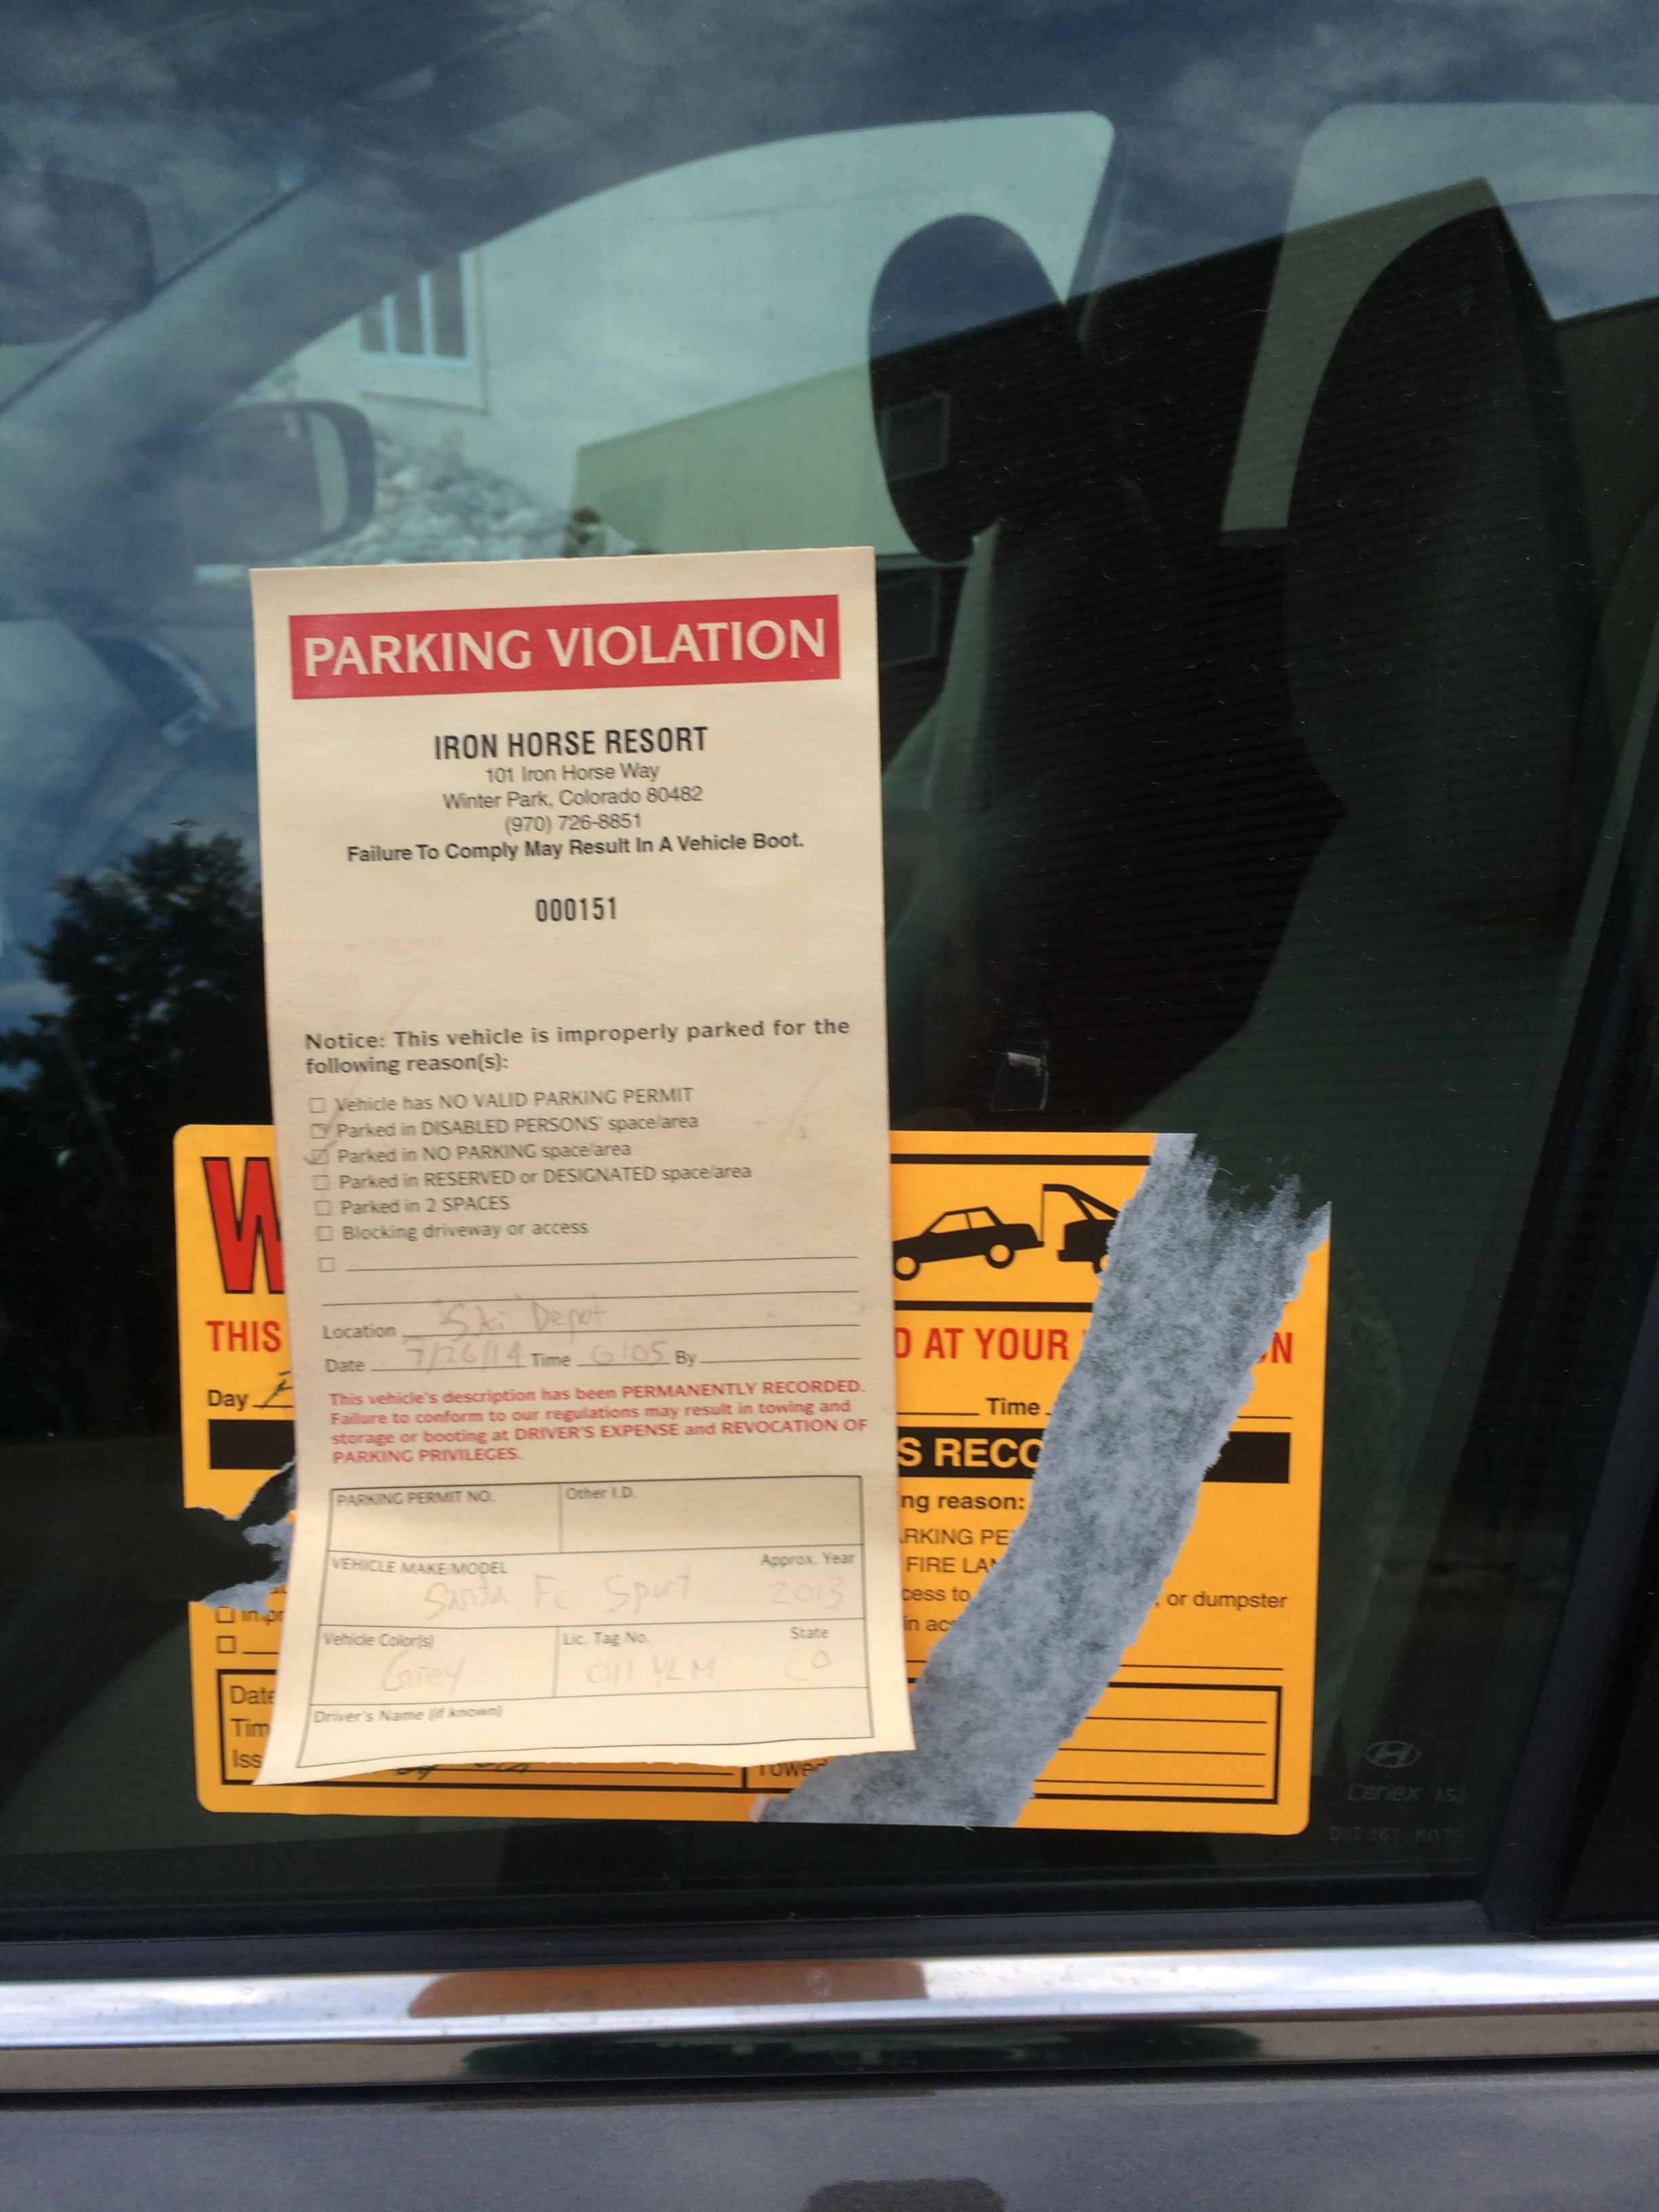 The usual American laws & stuff. Oops. Just remember to wind down the window when you return the rental.